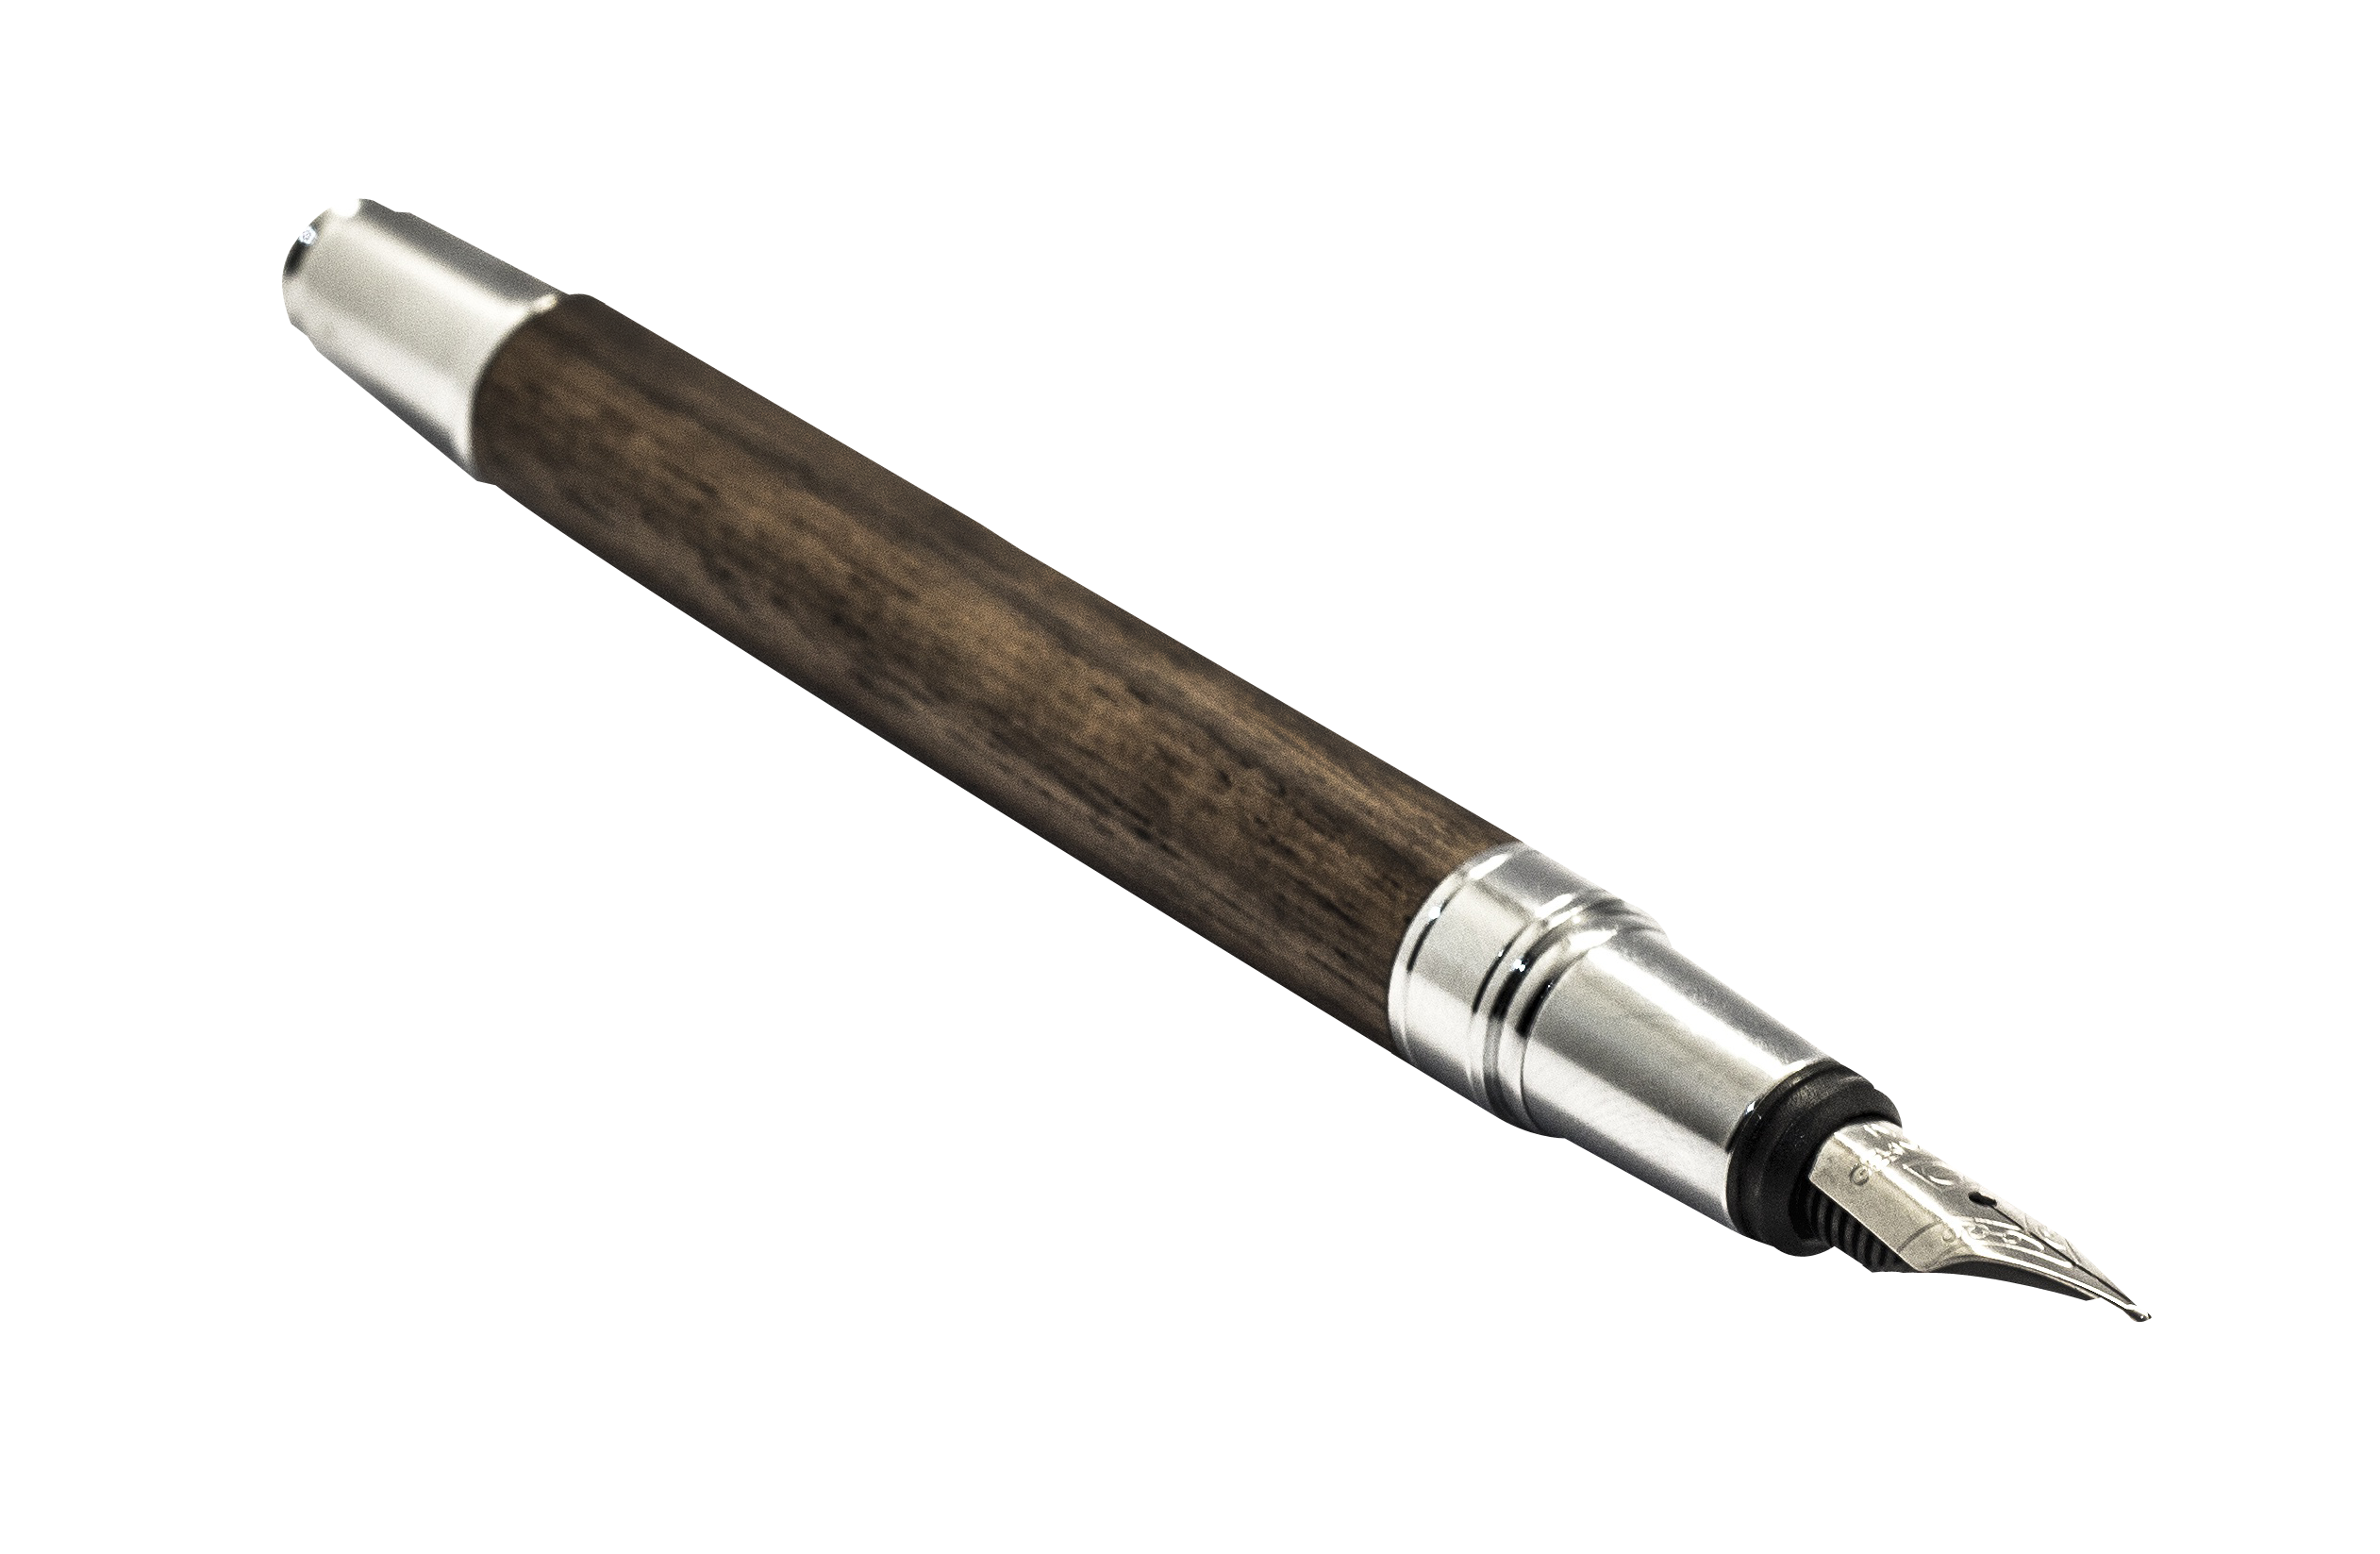 Download Pen PNG Picture.